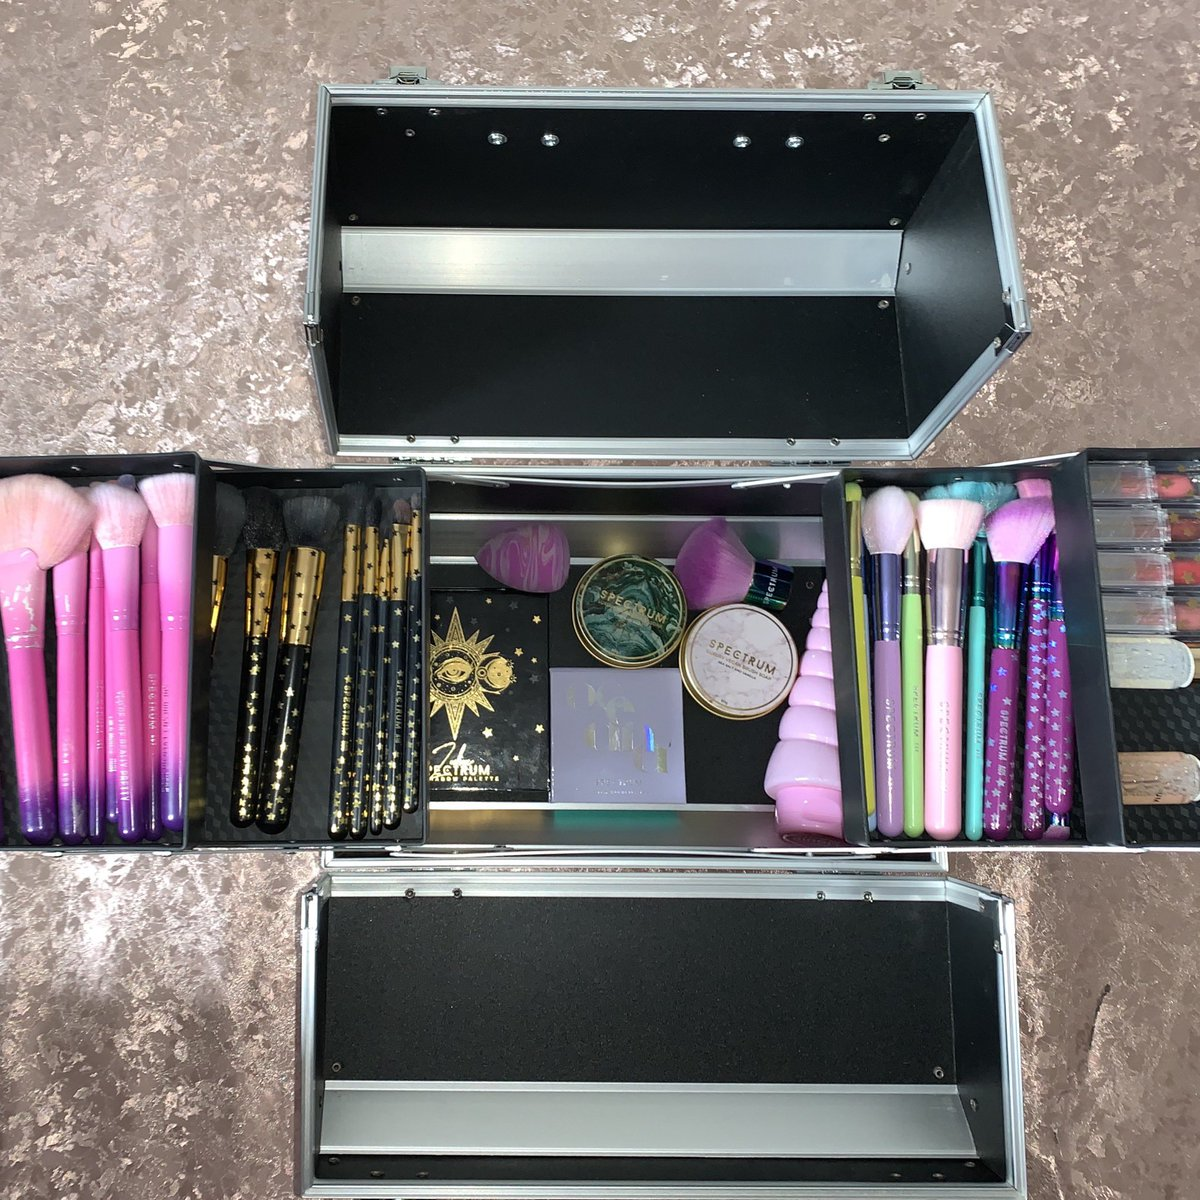 I bought a bigger cosmetic case as mine broke. I ordered a new big one from @amazon and It fits all my @Spectrumbrushes in... and there's room for more...#BeautyTies  #SpectrumAddict  #CosmeticCase #Amazon  #BeautyBloggerspic.twitter.com/tiMWhAn5Ix